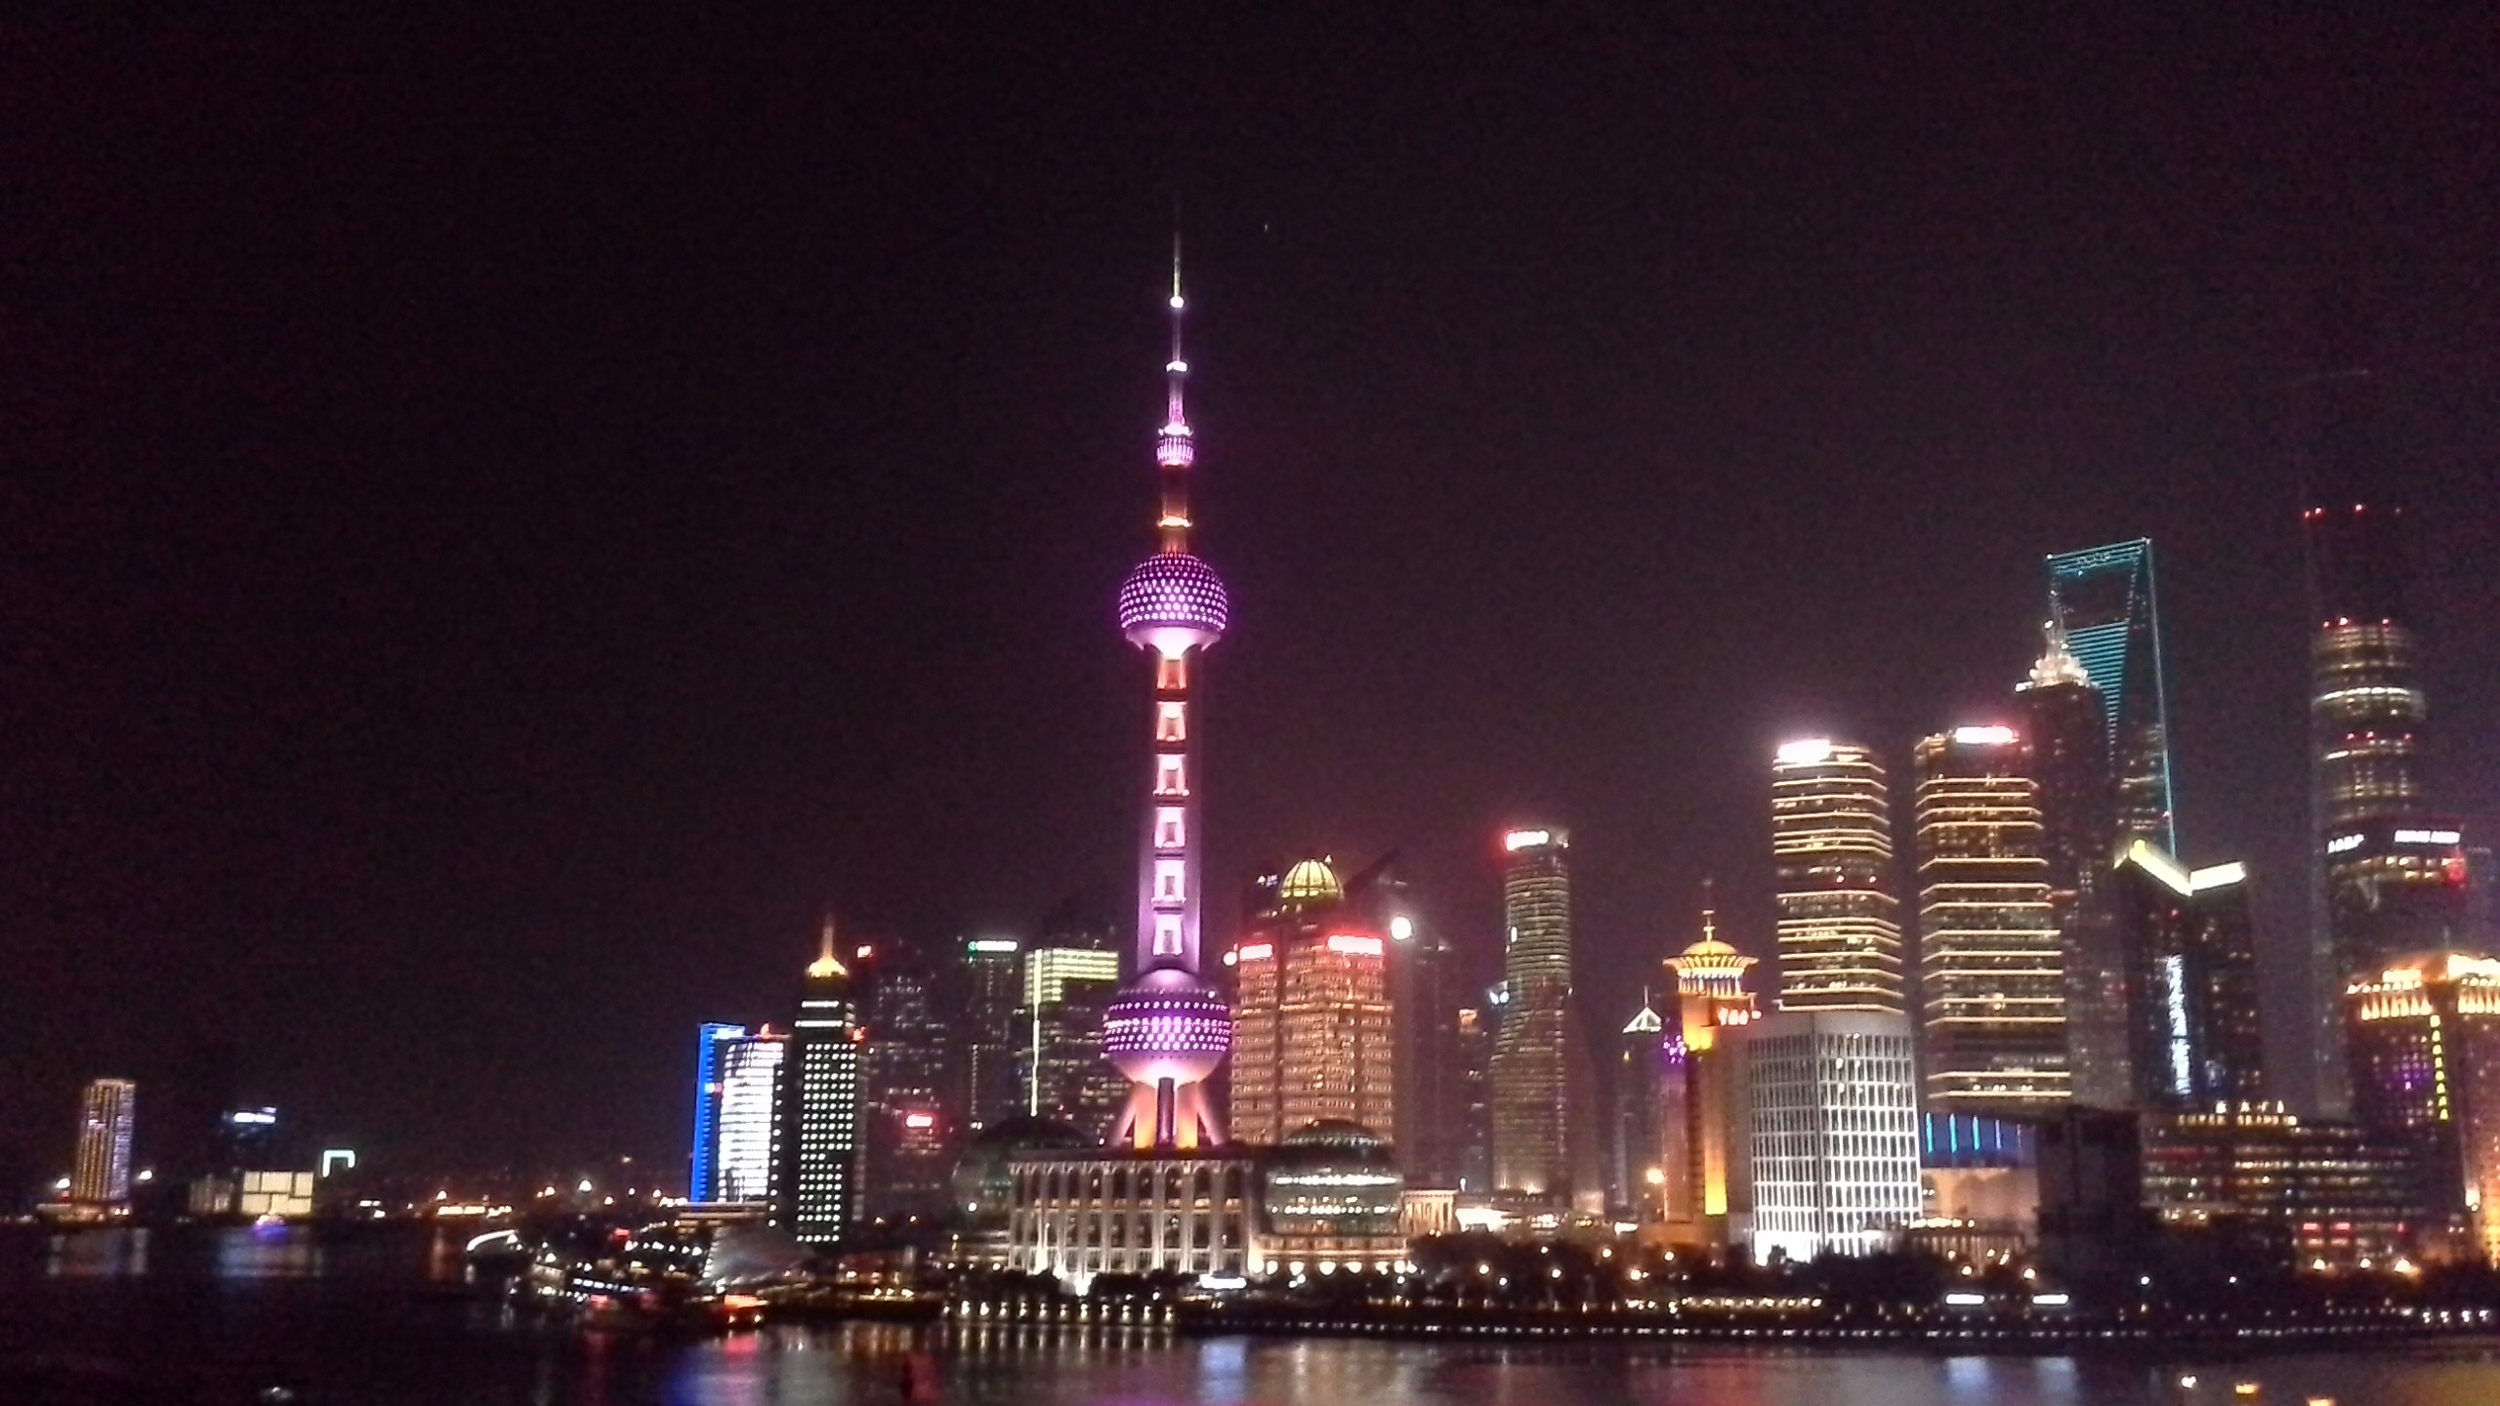 The Huangpu River has its own unique .. sometimessubtle sounds to be heard beneath the urban din